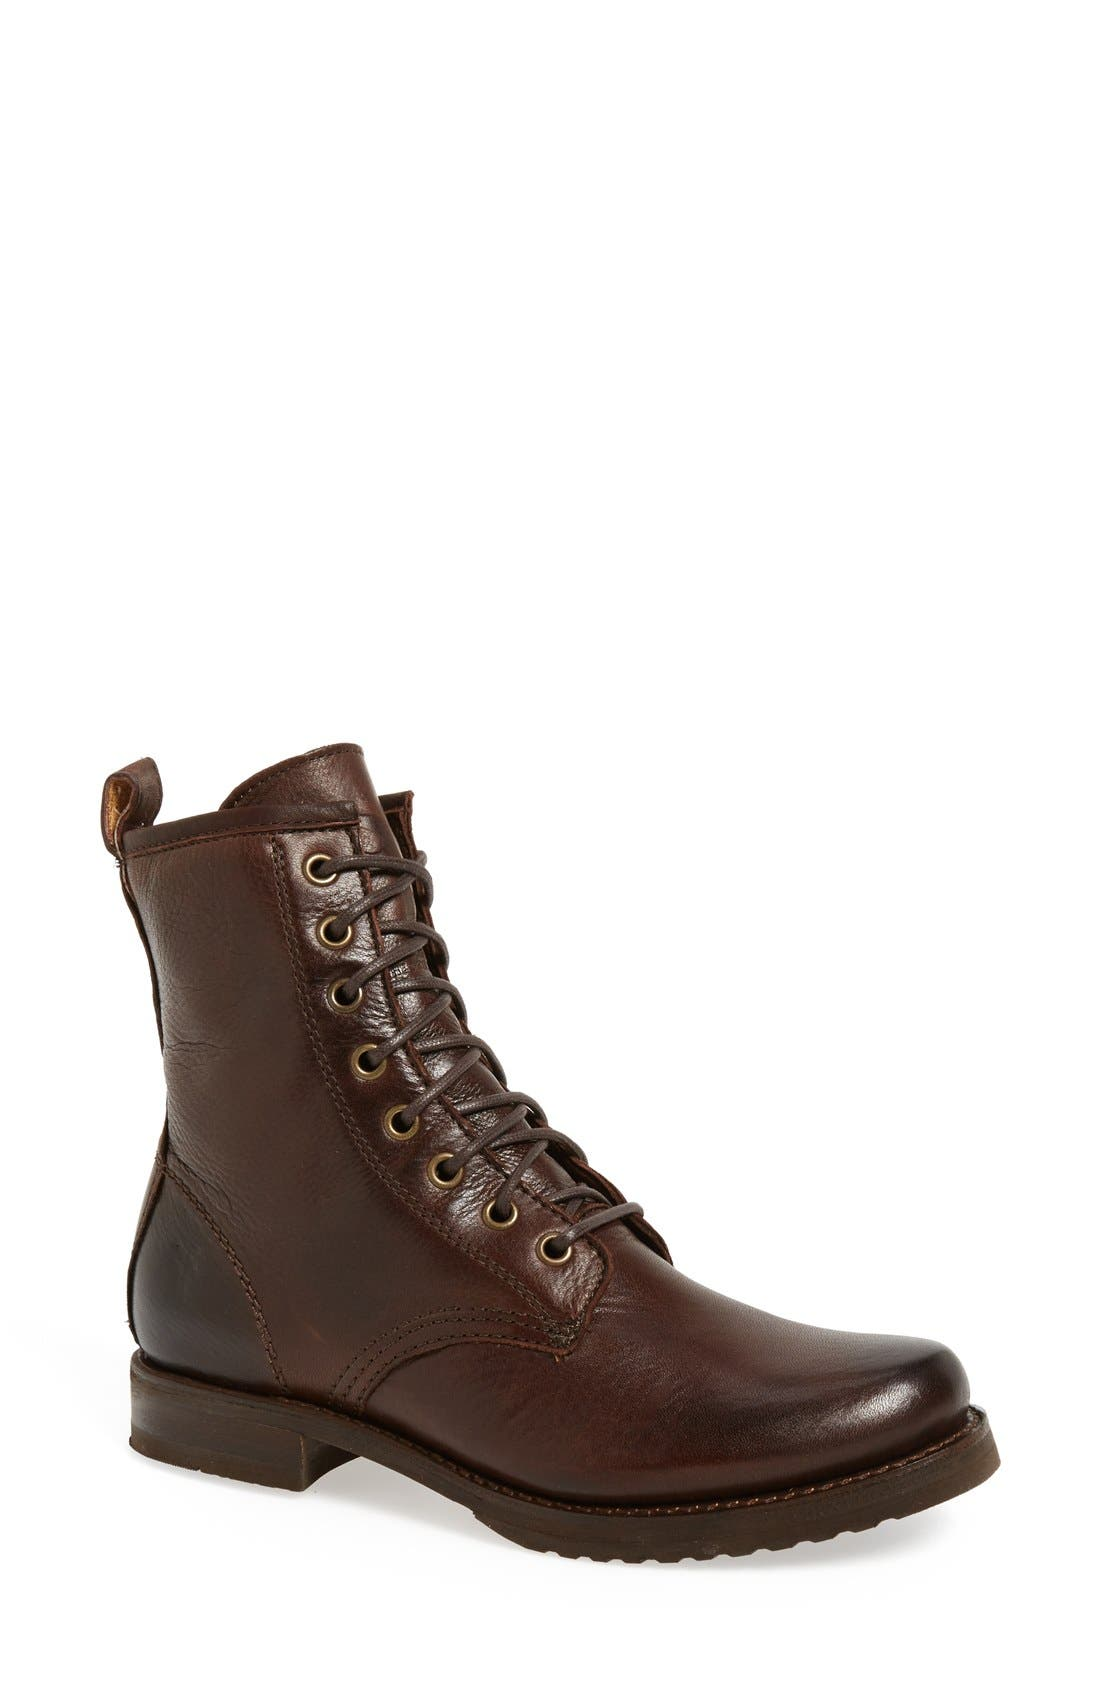 Alternate Image 1 Selected - Frye 'Veronica Combat' Boot (Women)